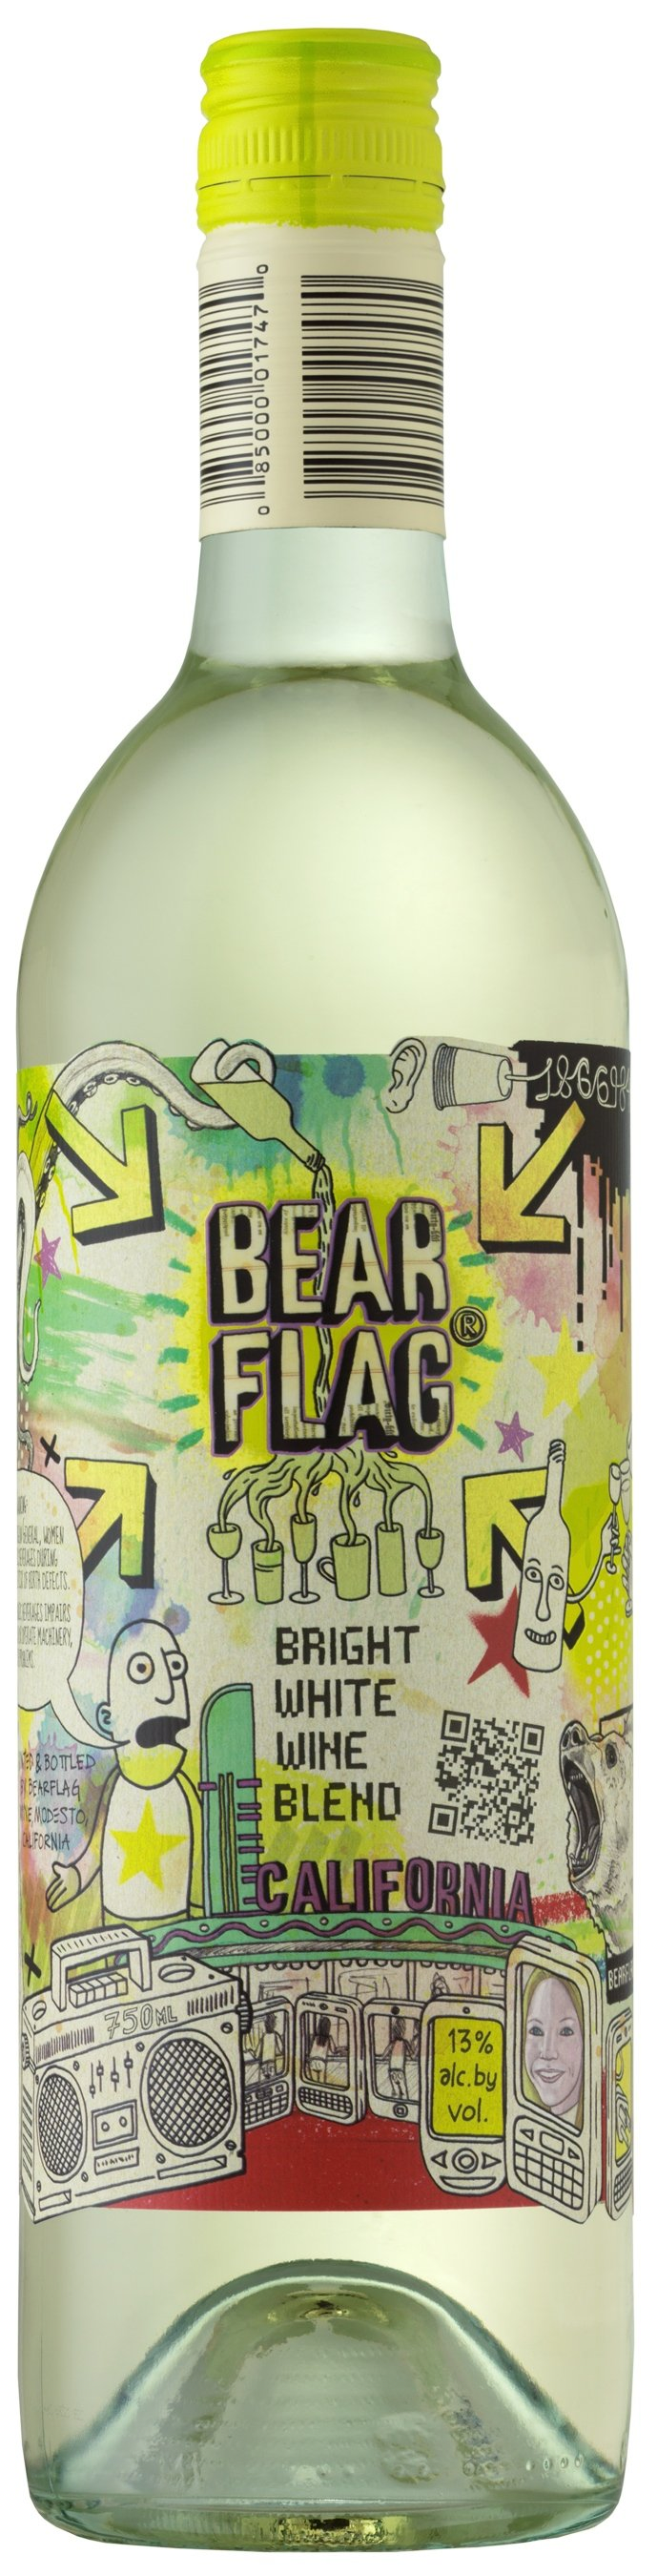 NV Bear Flag Bright White Wine Blend